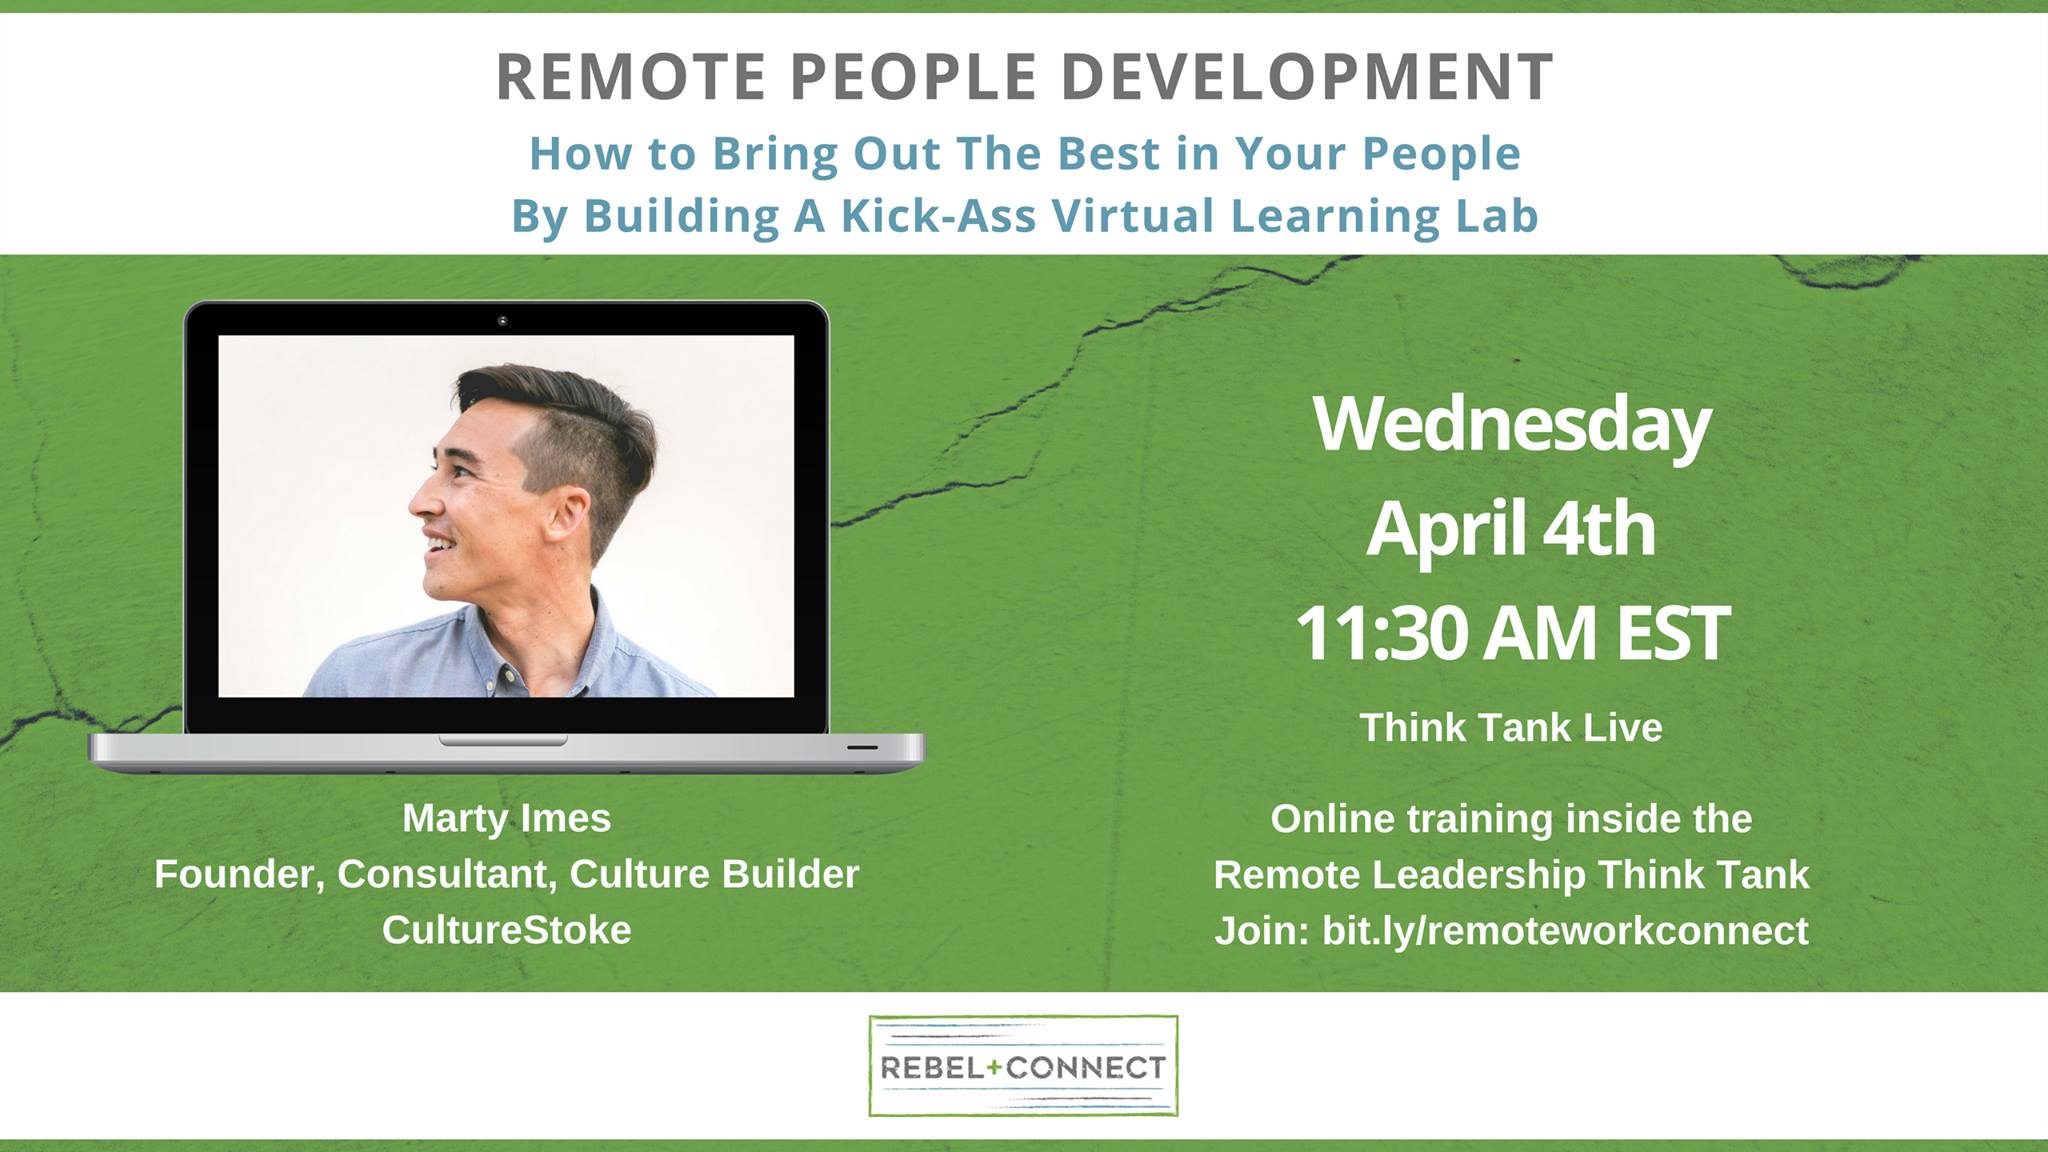 Remote people development: Building a kick ass virtual learning lab